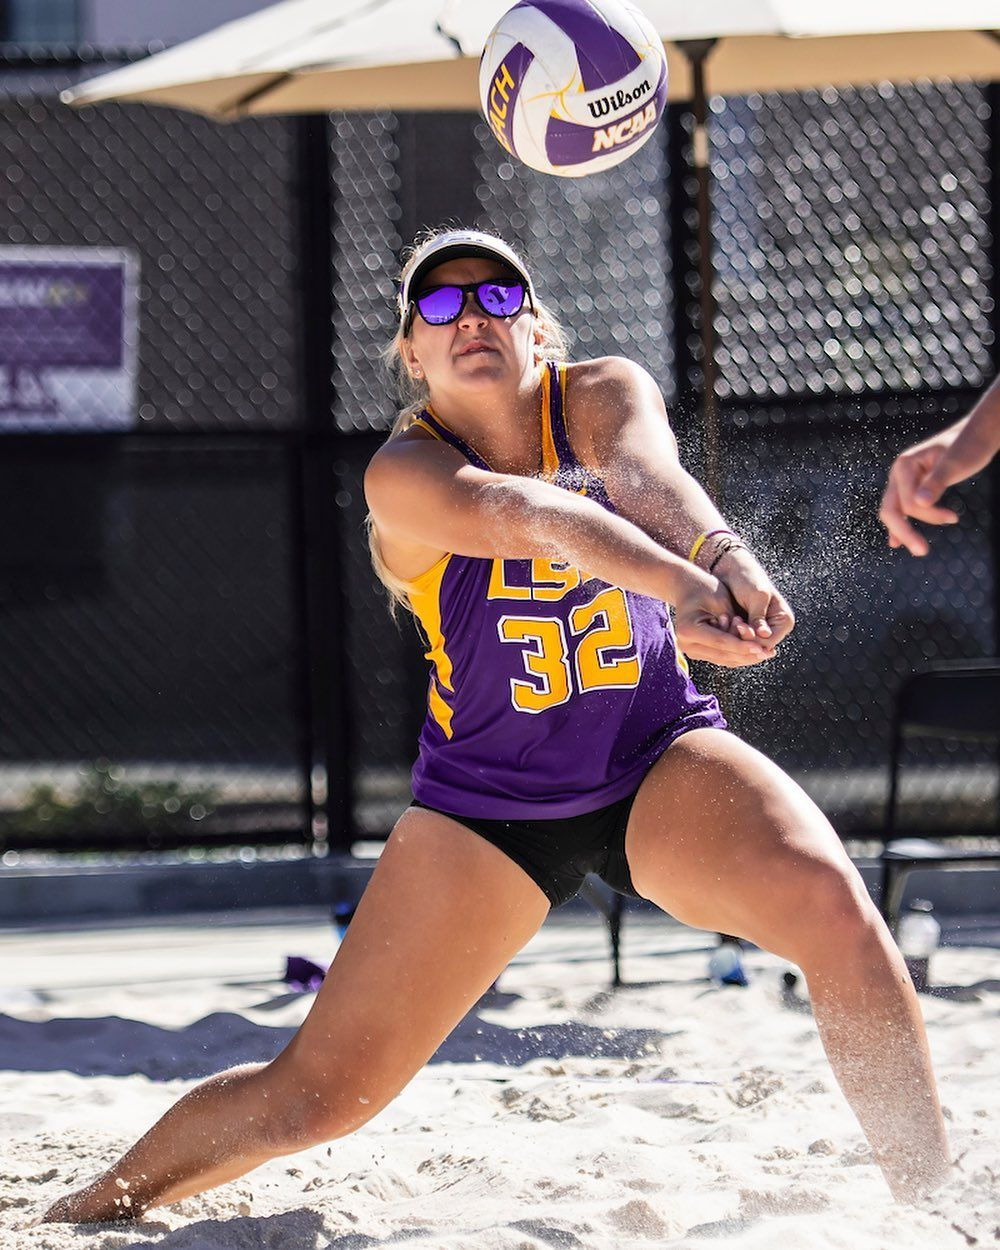 Lsu Beach Volleyball On Instagram Happy Birthday Natalie Beach Volleyball Lsu Captain Hat